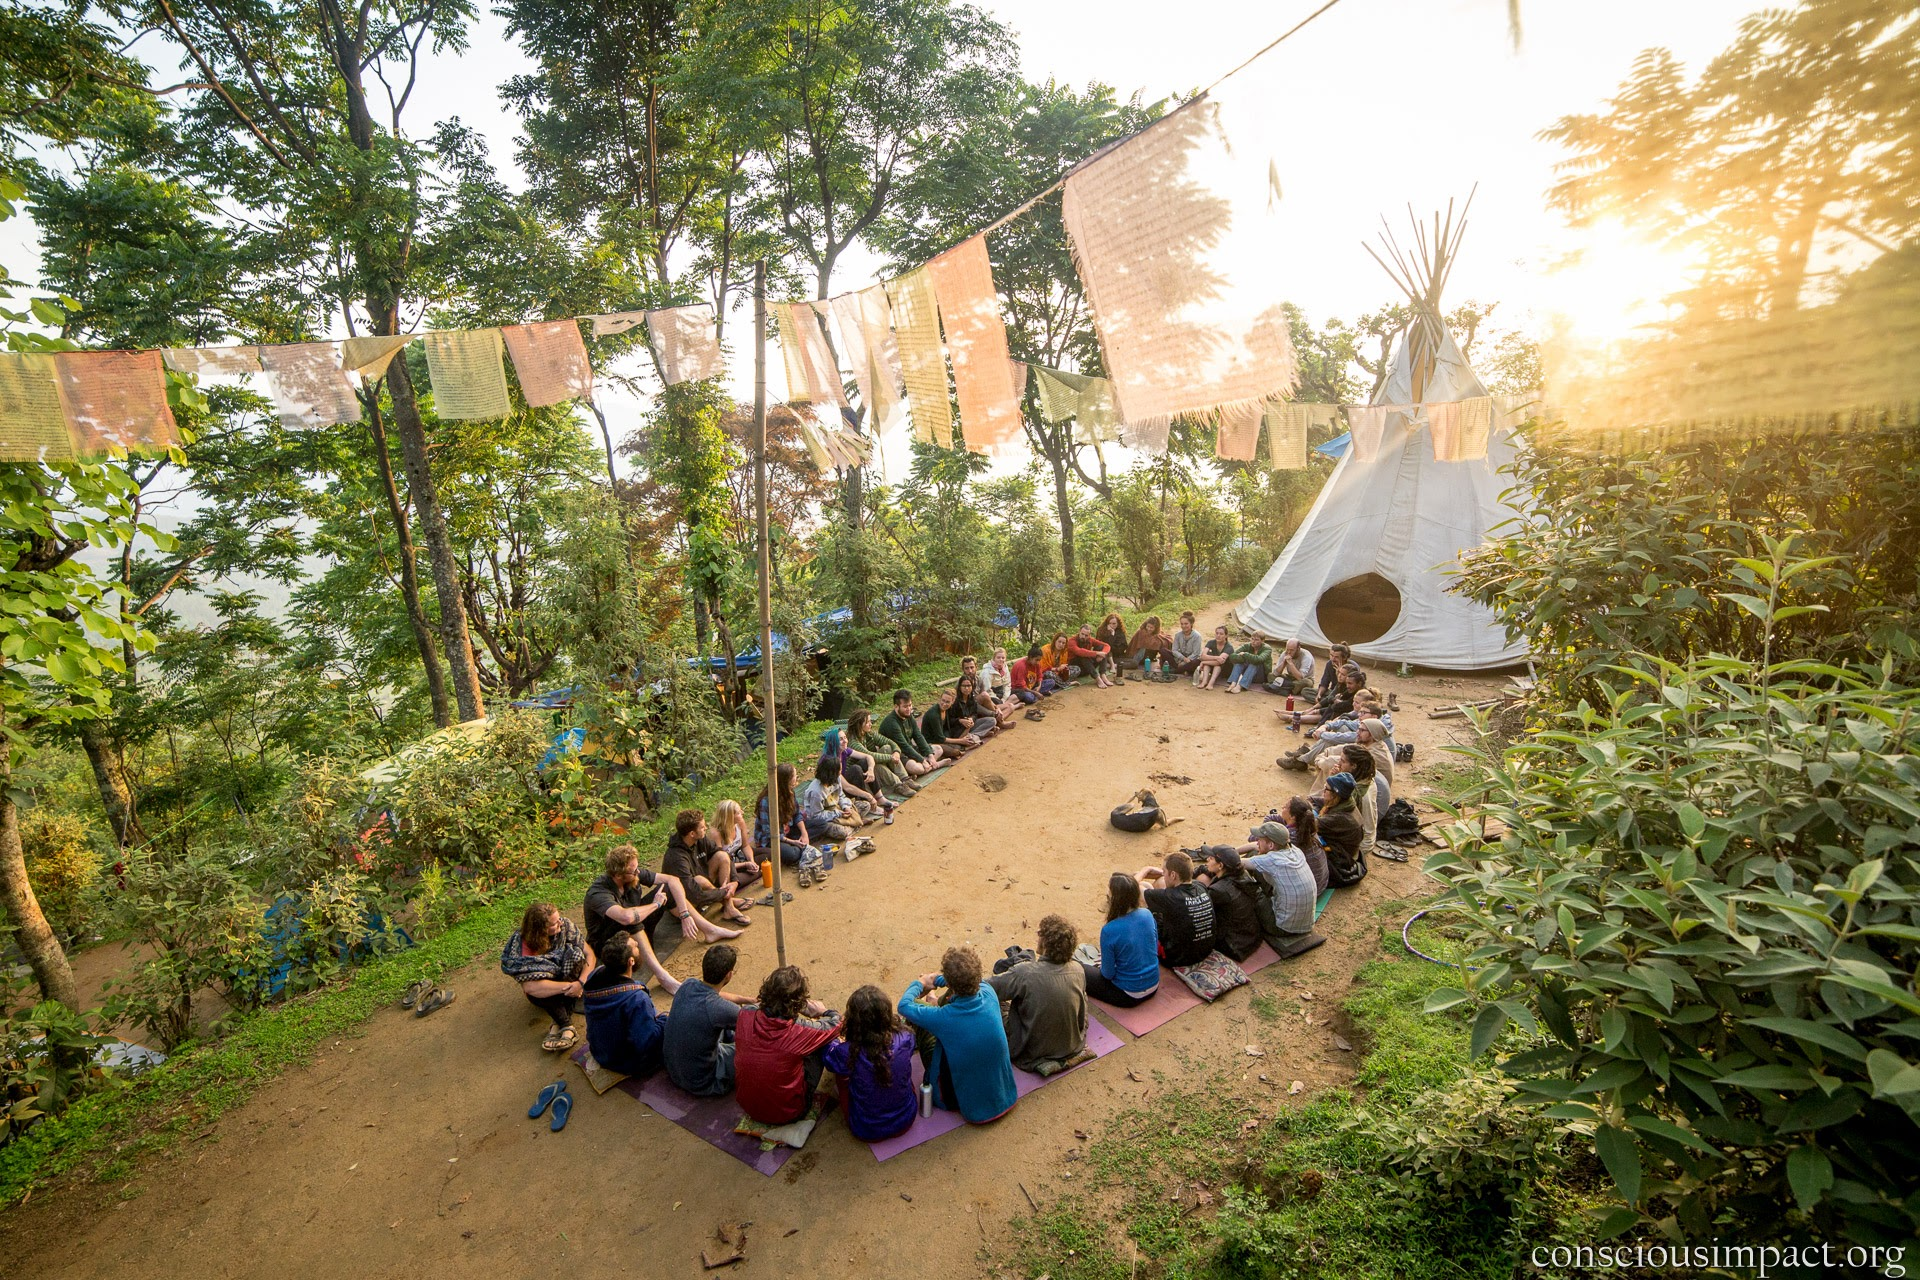 Conscious Impact volunteers gather to share gratitude at our camp in Takure. Photo by Jonathan H. Lee